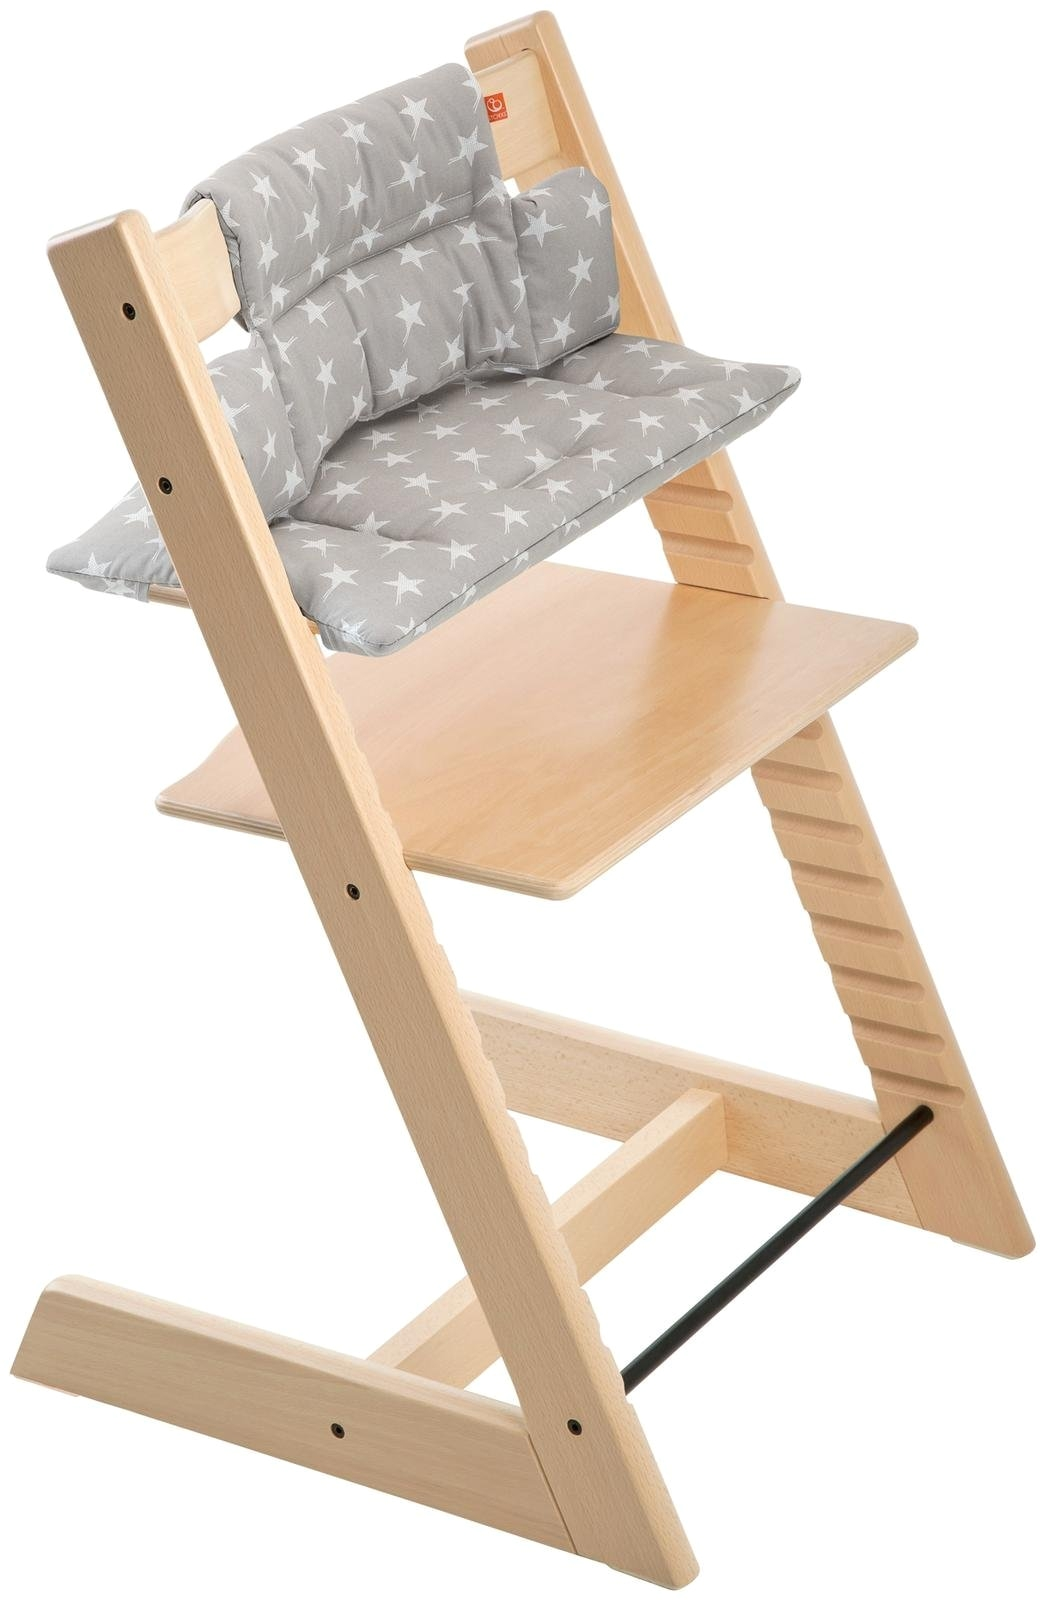 space saving high chair ikea recall first years amazon com stokke tripp trapp grey childrens